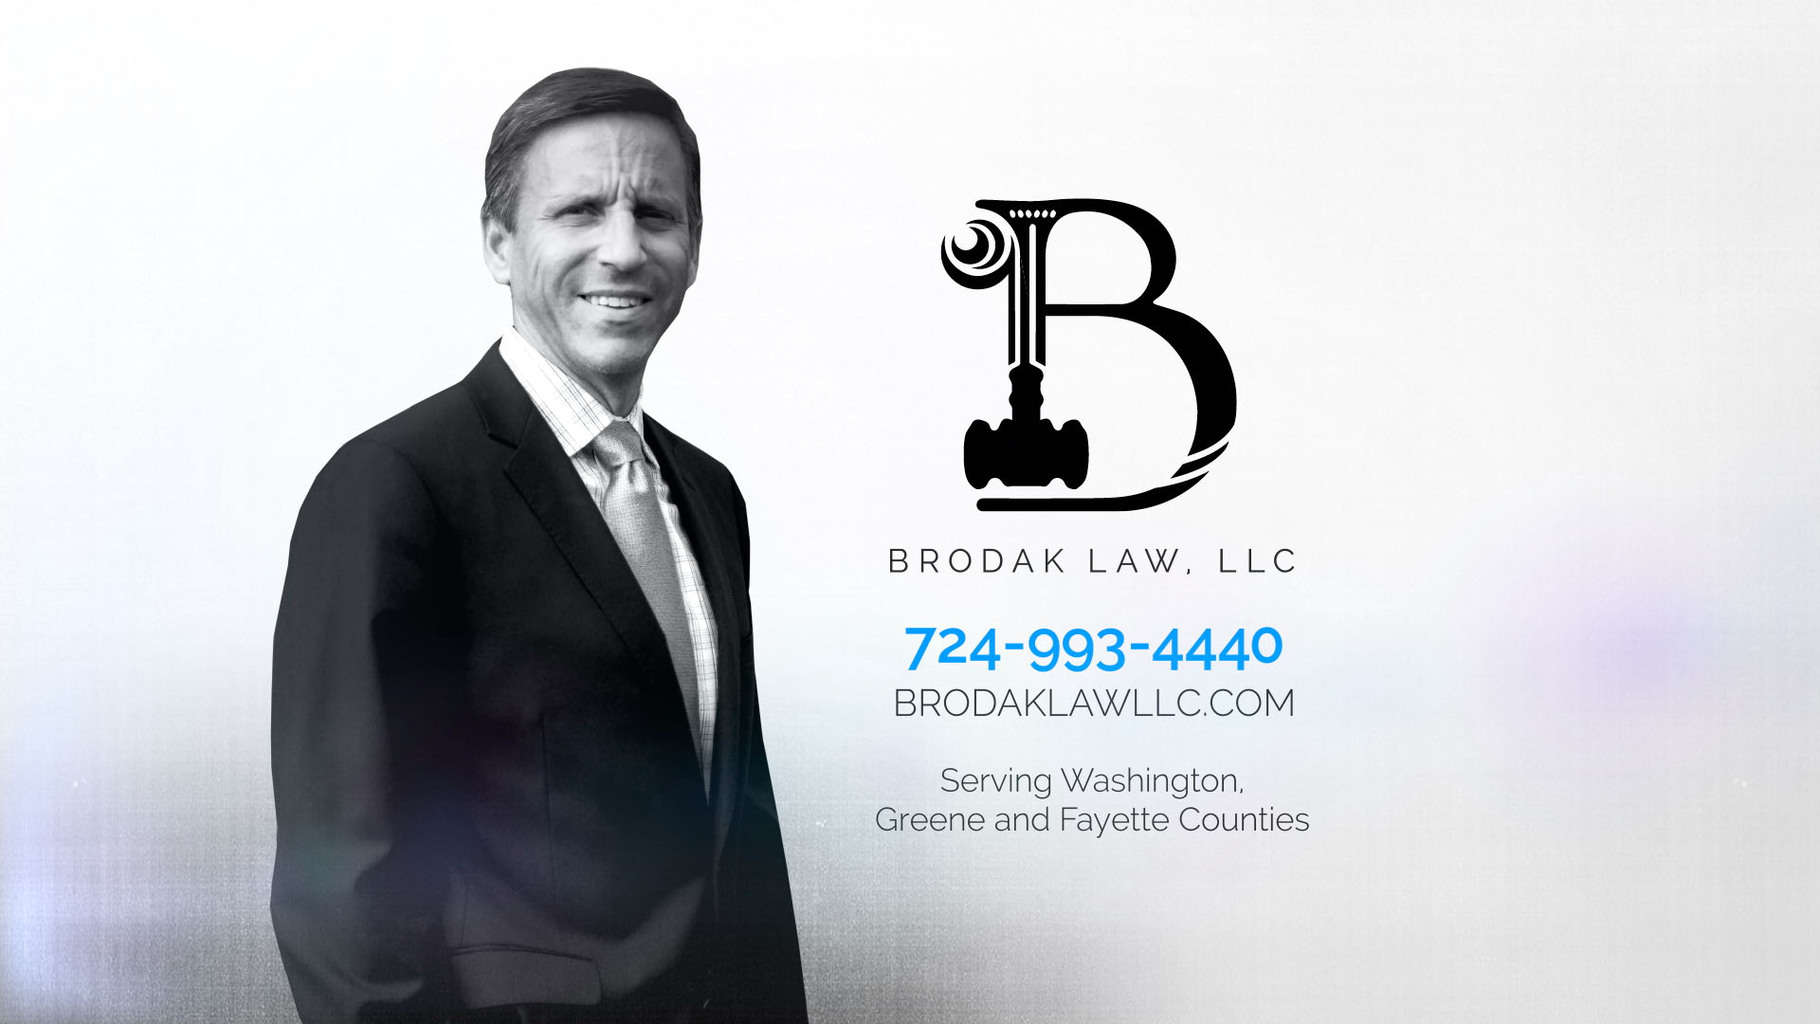 Joe Brodak Law | PA Commercial Video Production | PA Videographer